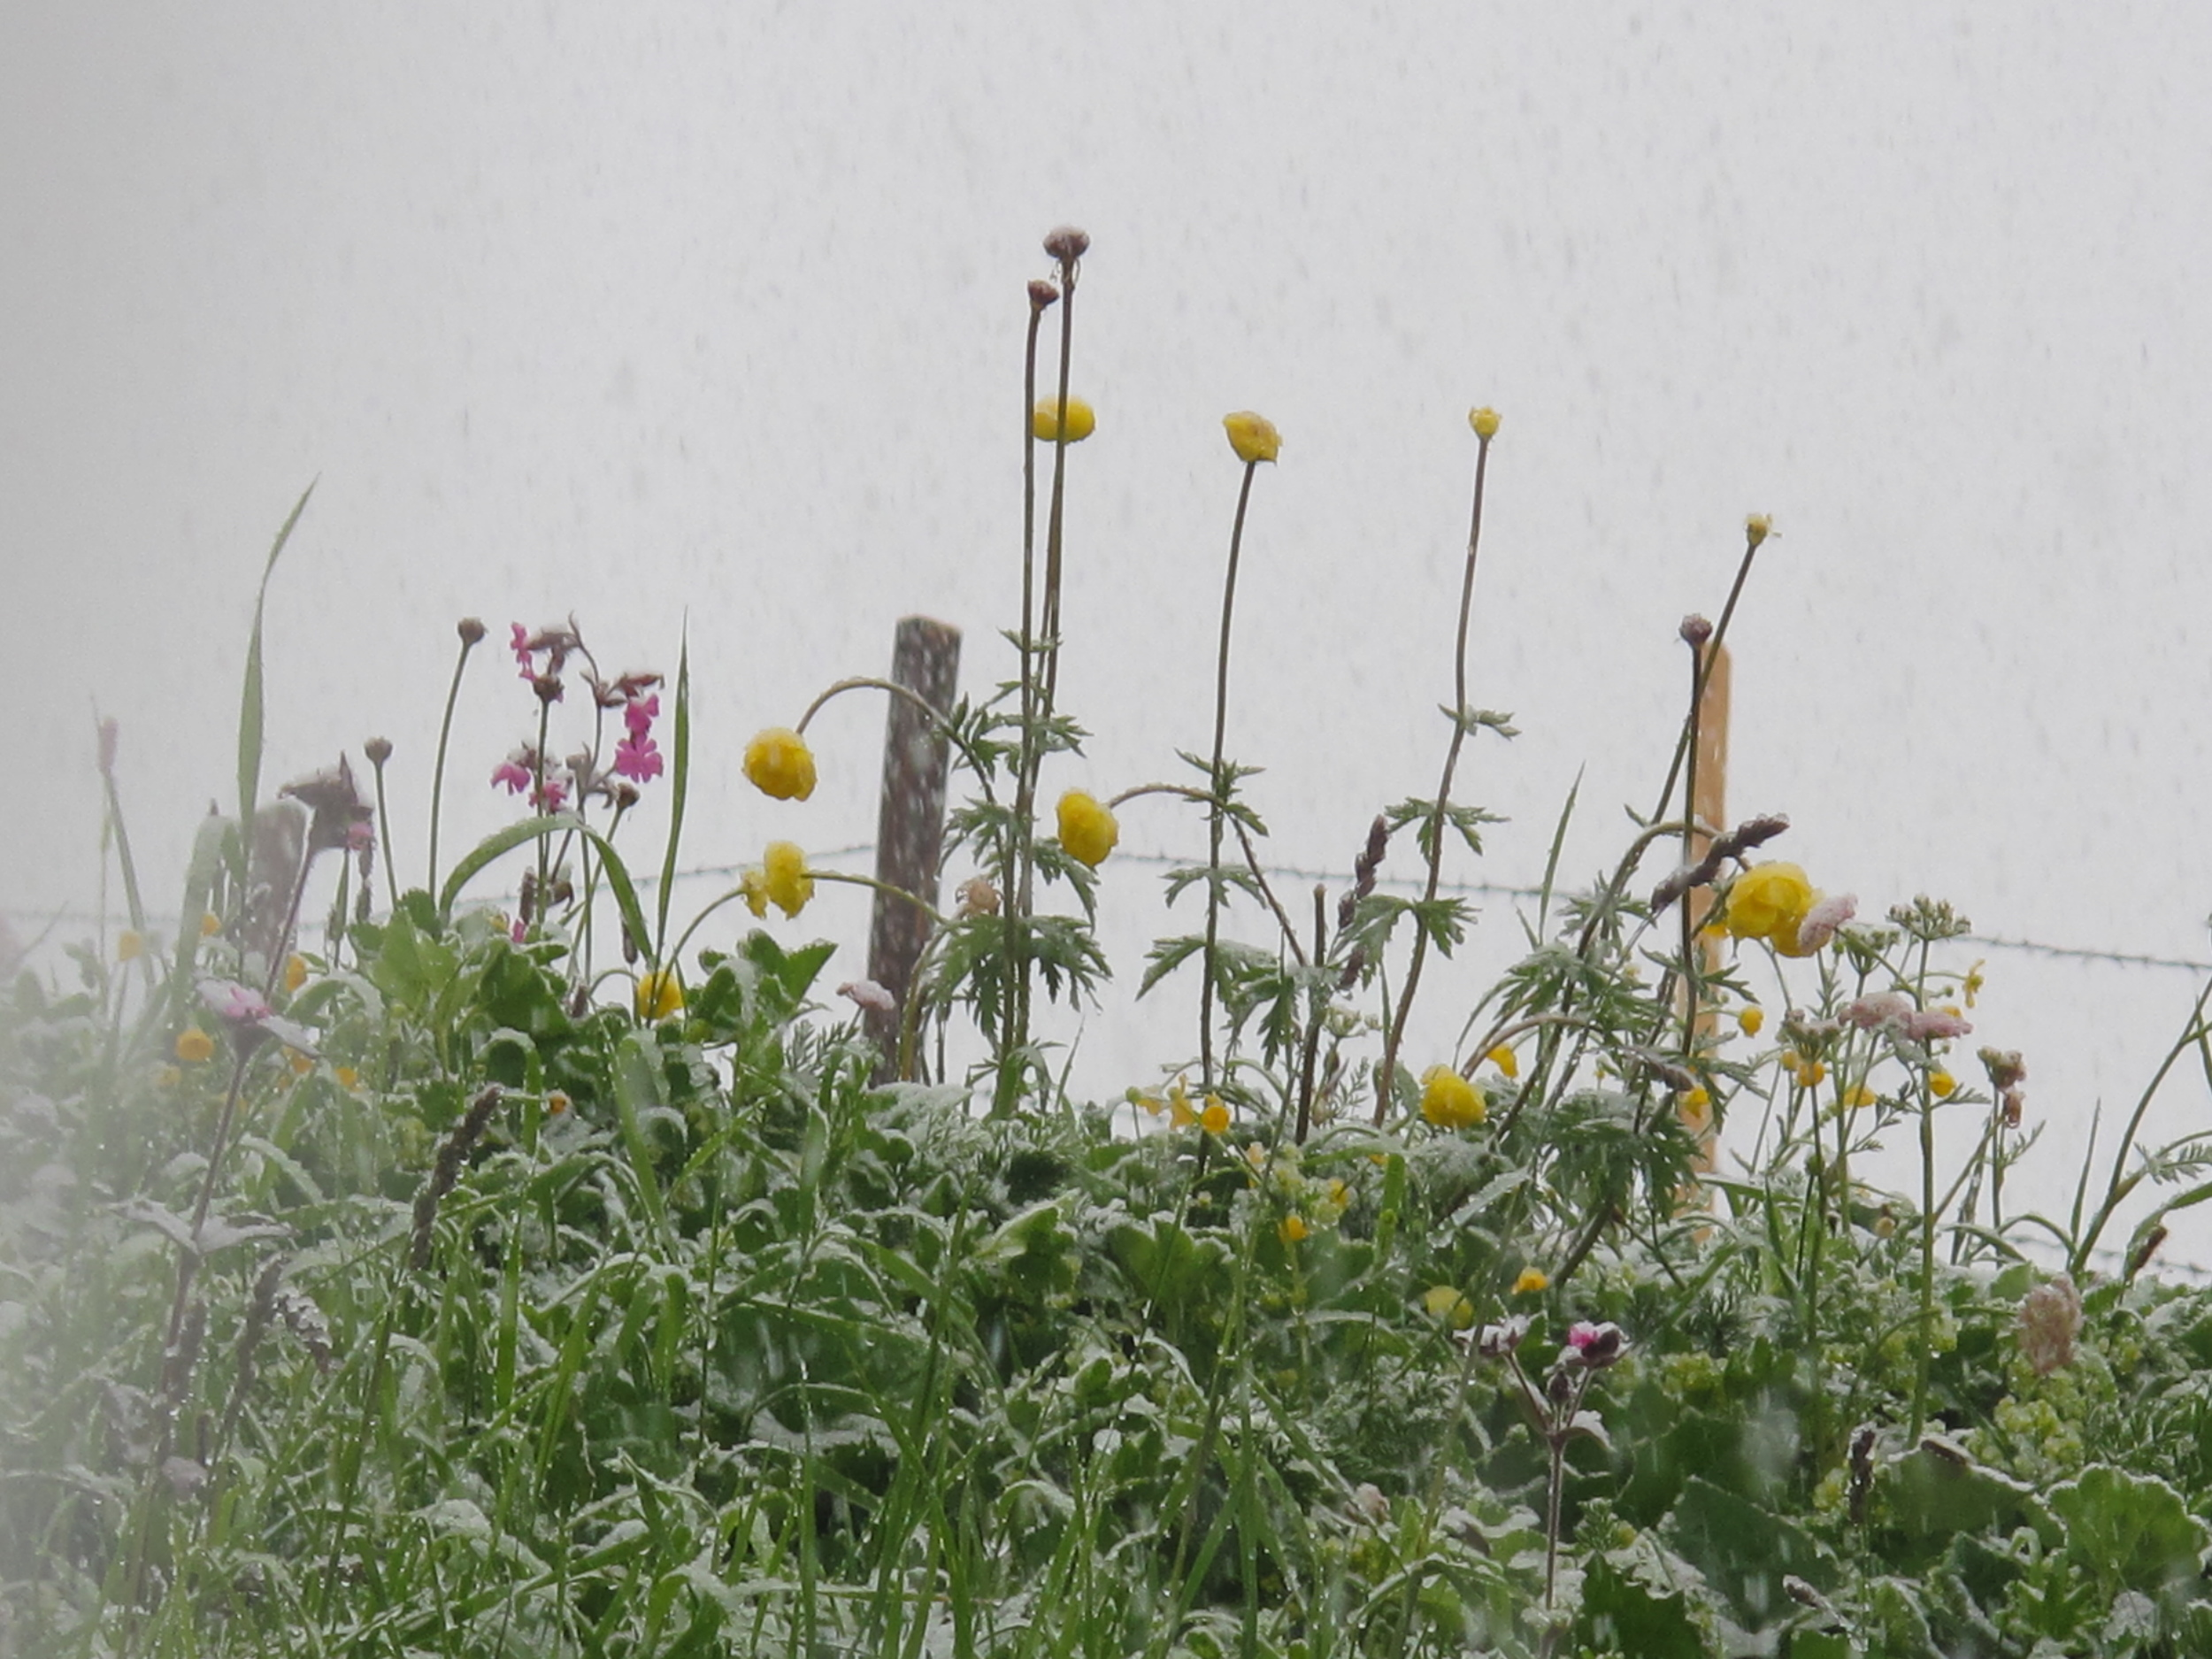 Snowing in the Swiss Alps in summer time - snow on the buttercups and wild flowers